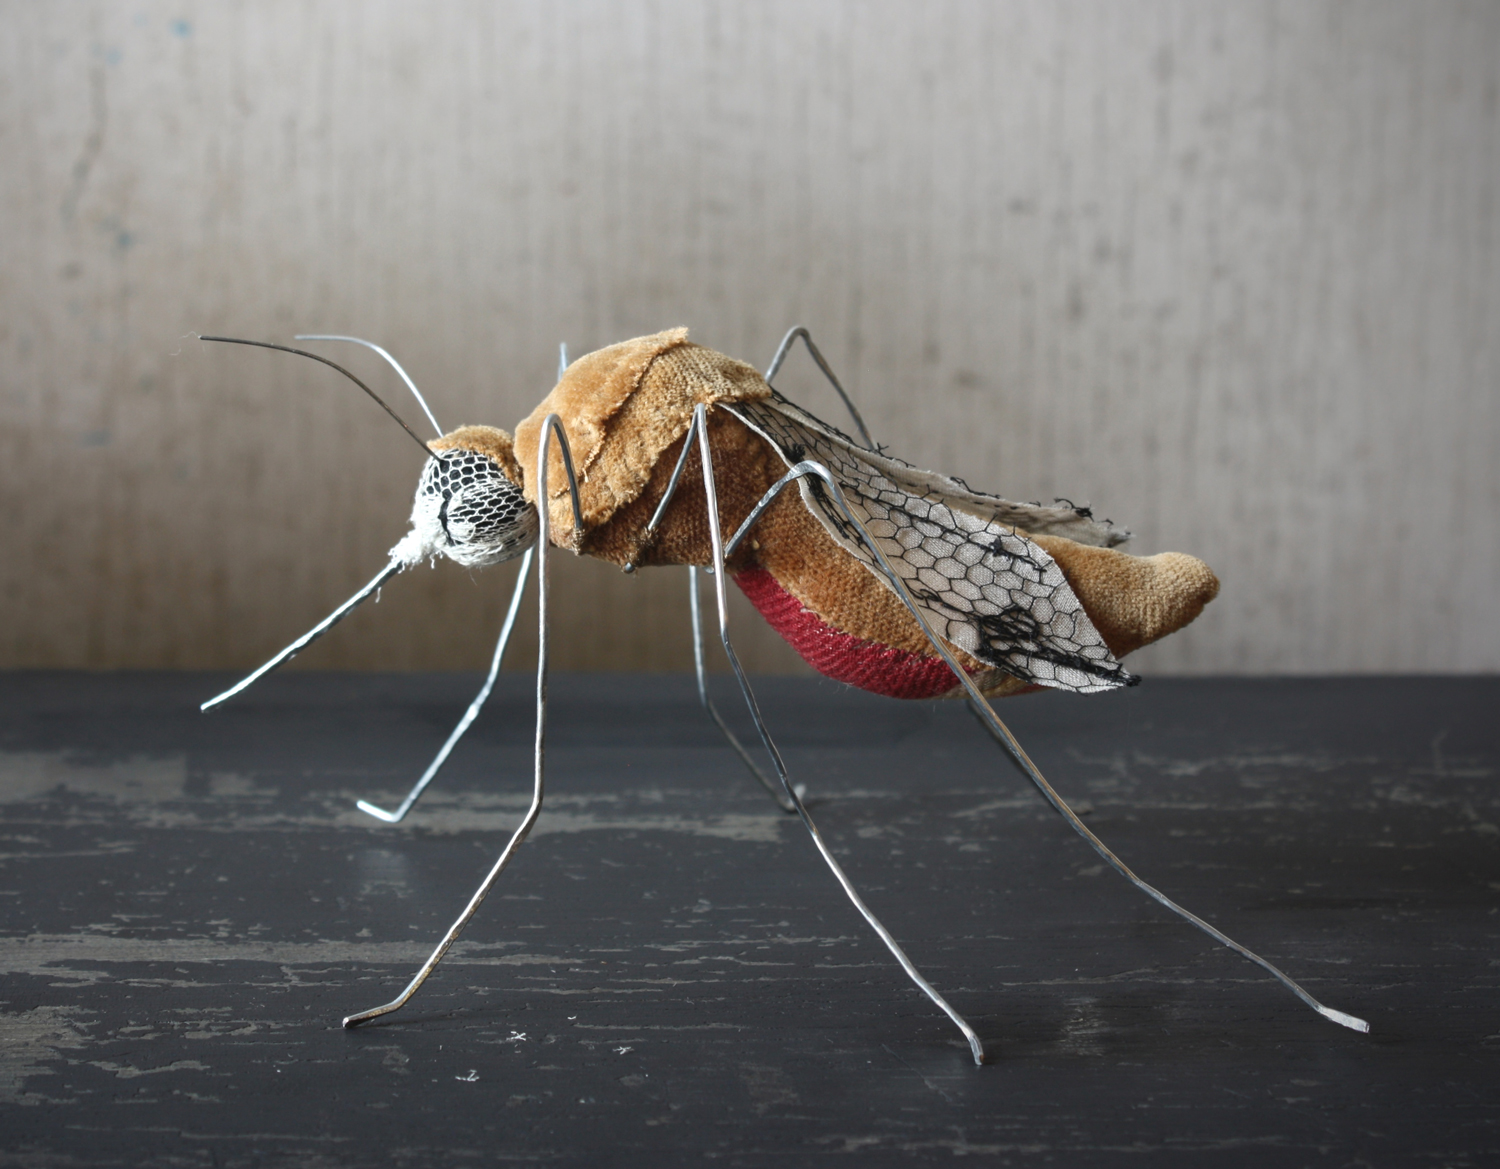 Wood Tv 8 Mosquito blog – Page 8...